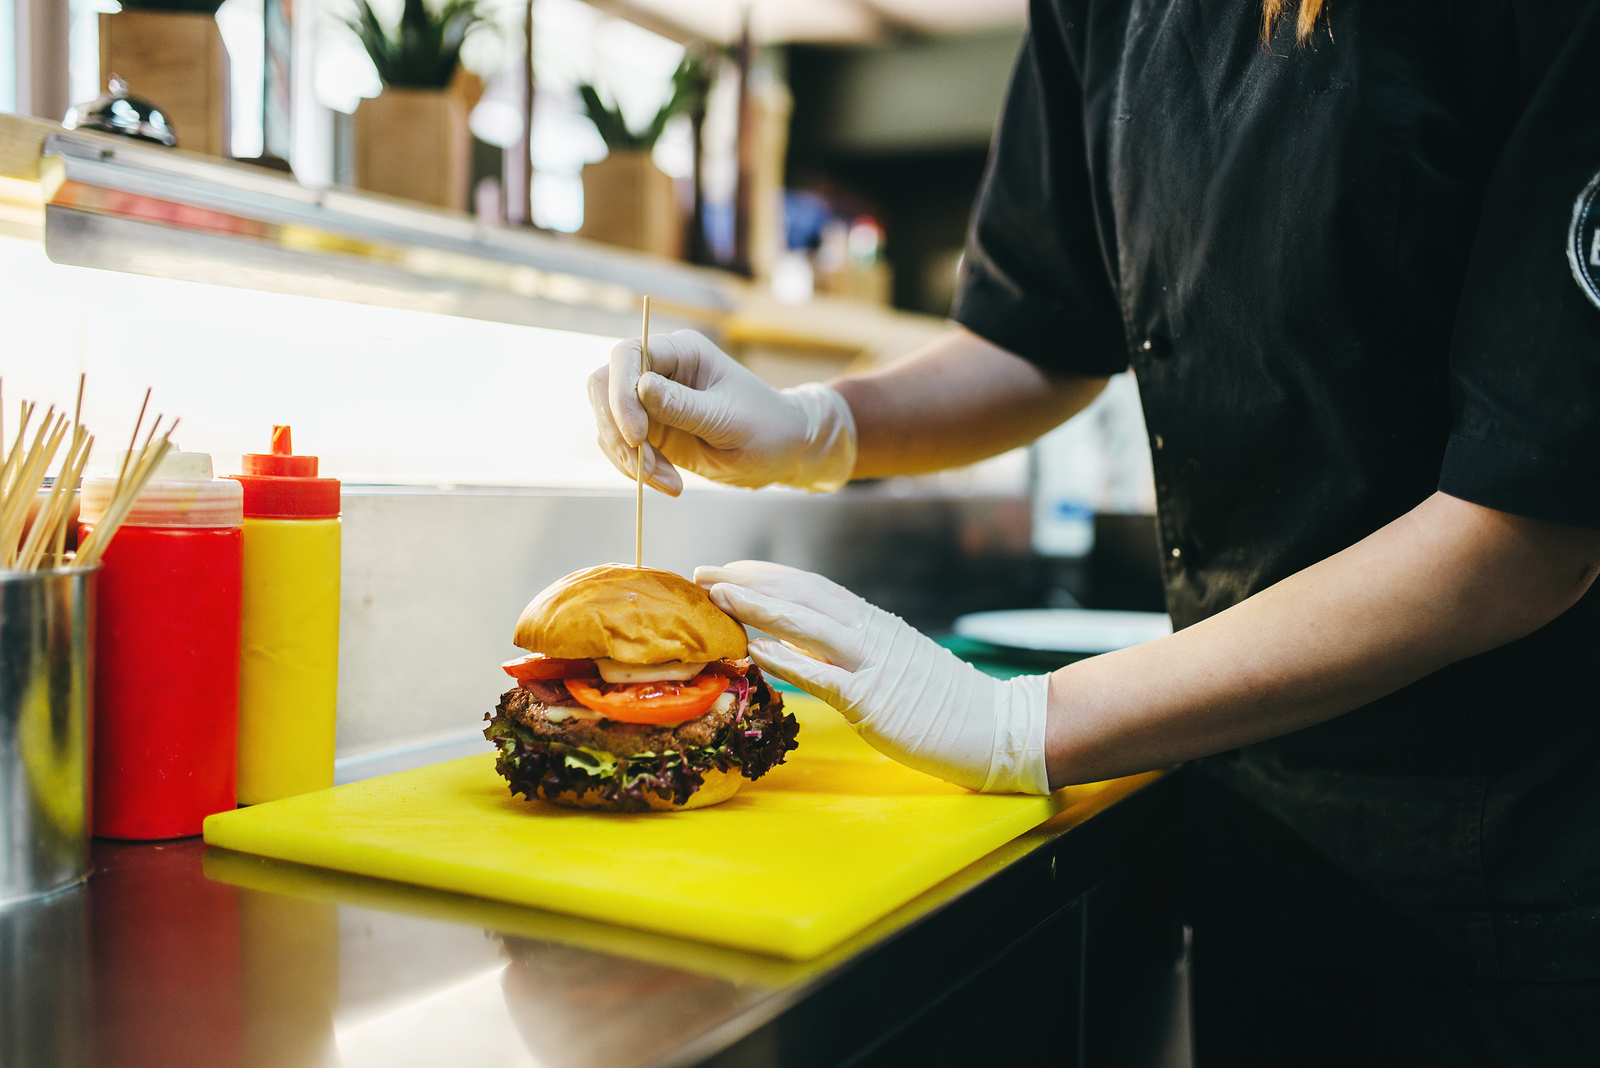 Top 7 Companies for Job Openings in Fast Food